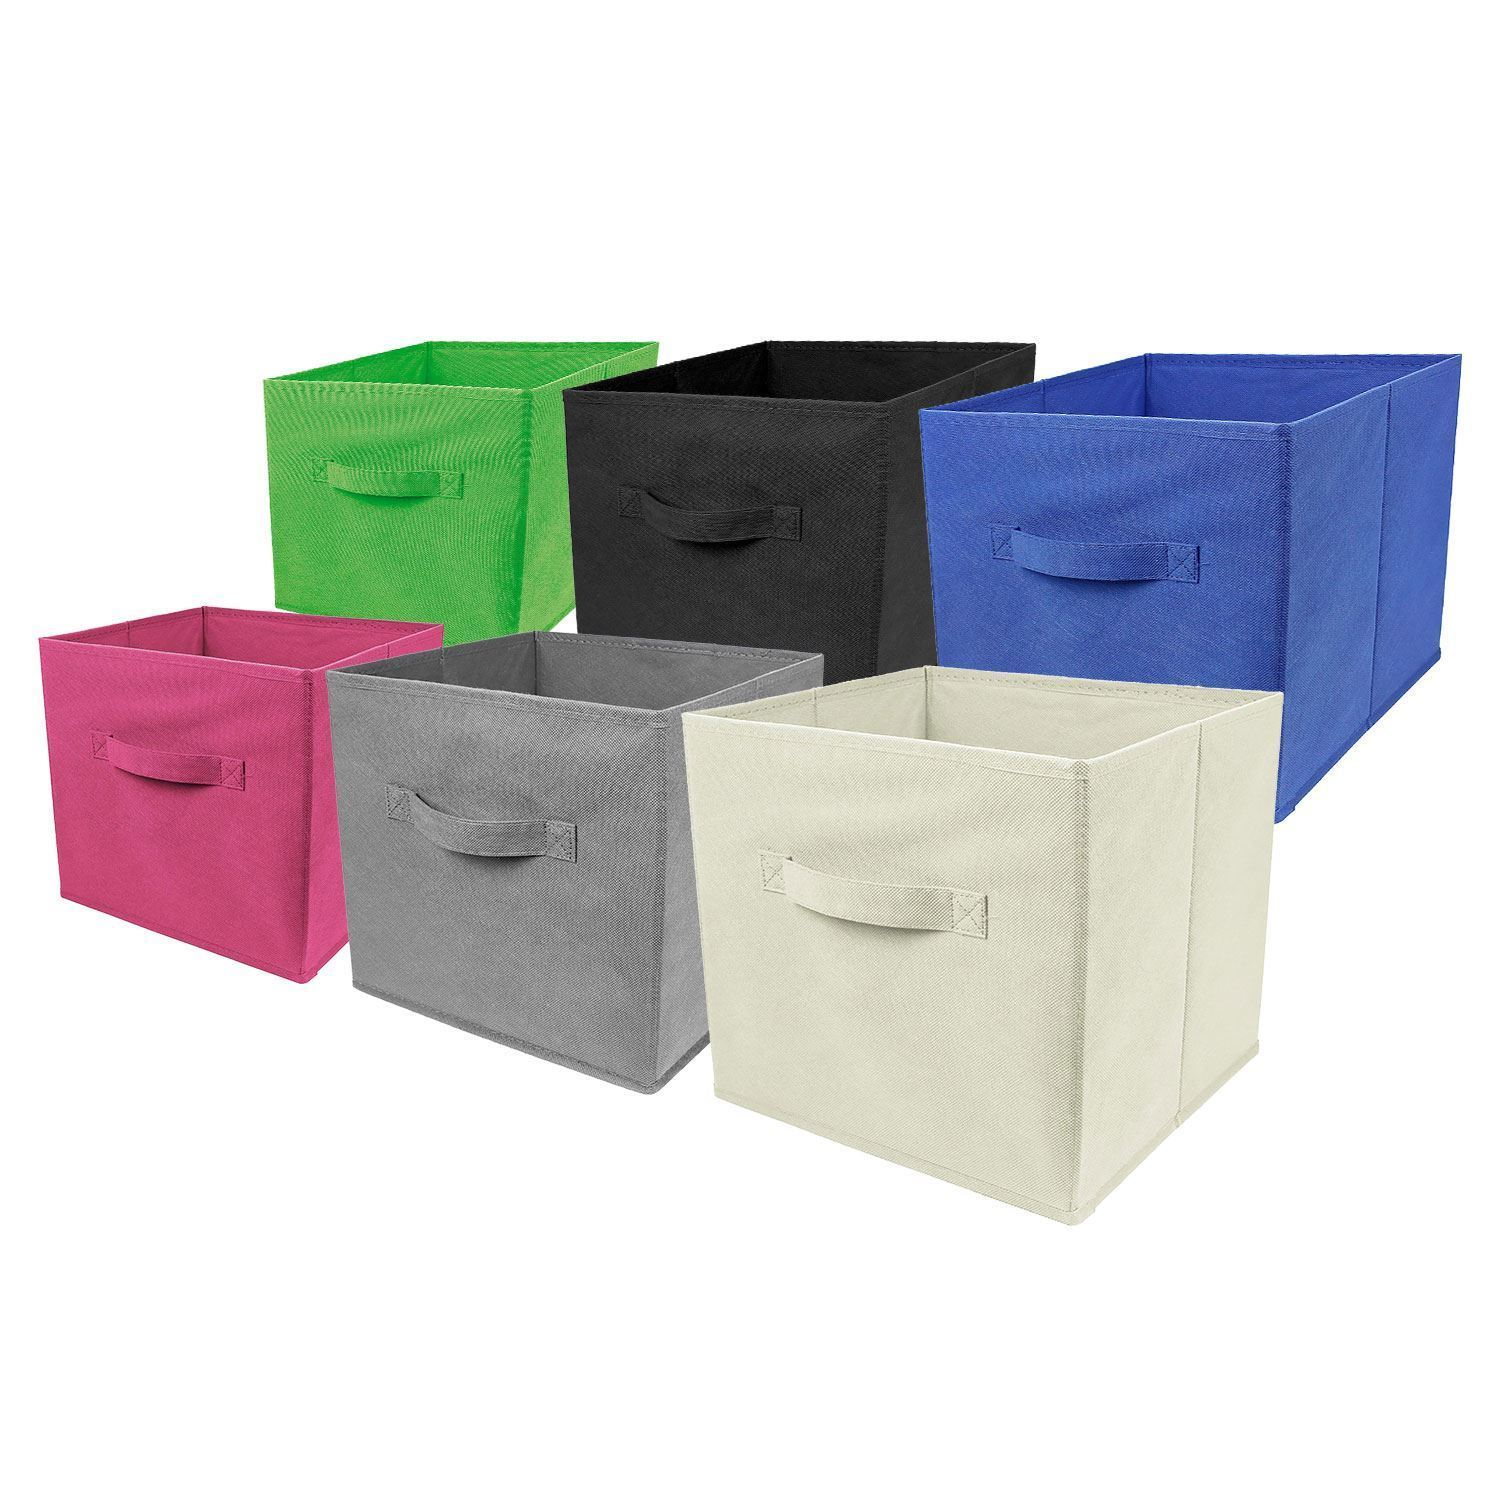 5 x foldable collapsible canvas fabric storage cube bin organiser boxes bookcase ebay. Black Bedroom Furniture Sets. Home Design Ideas